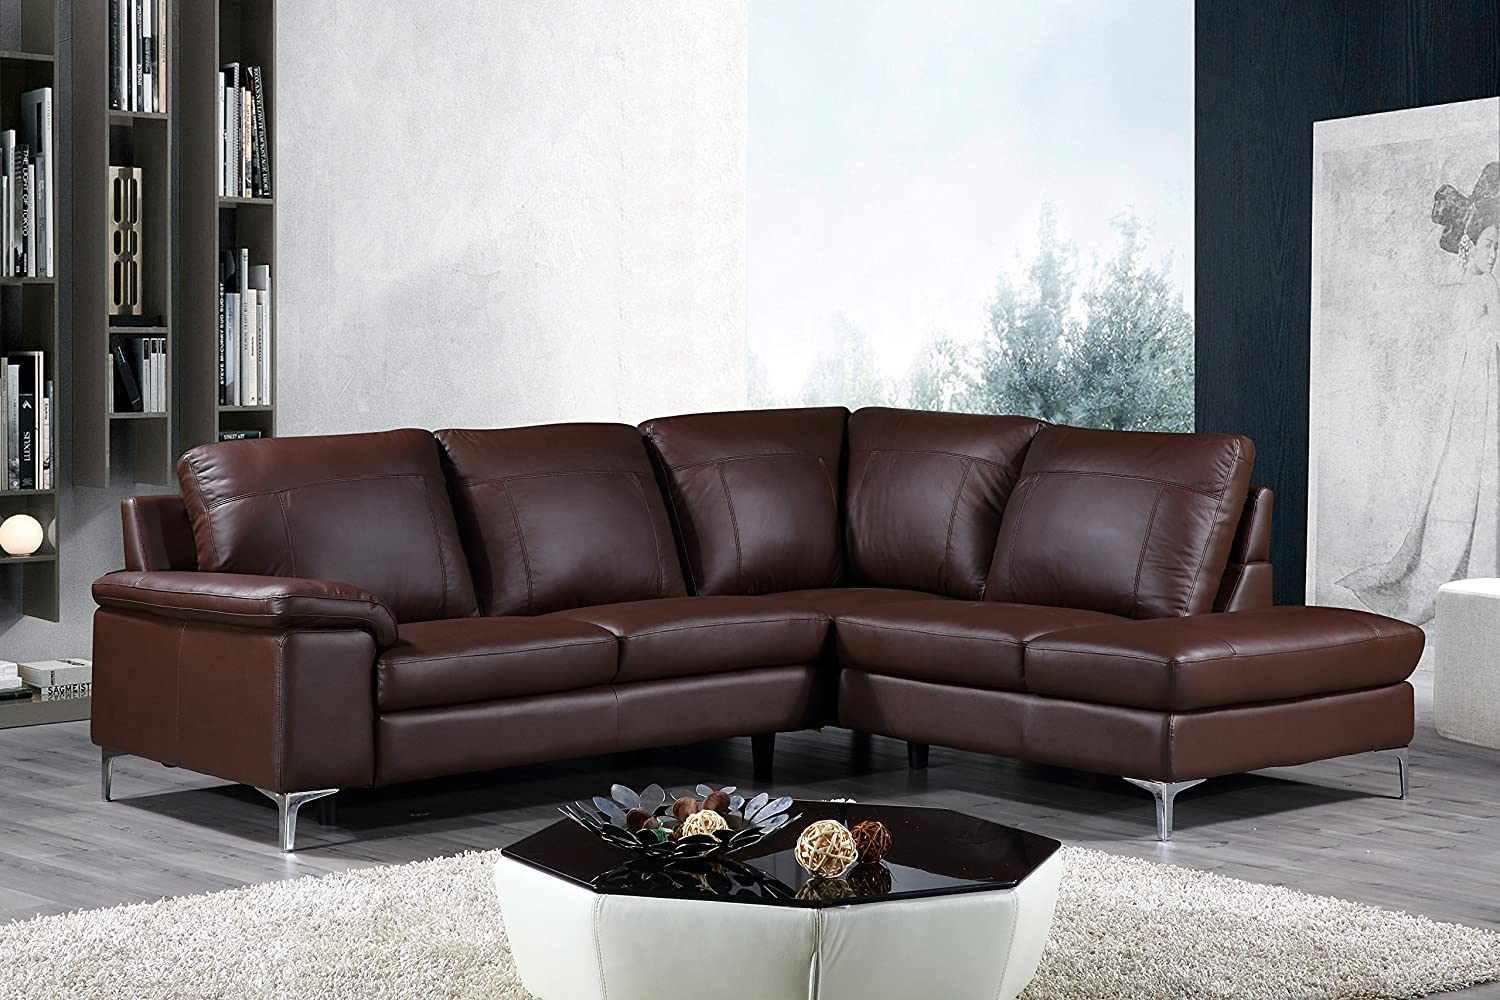 Cortesi Home Contemporary Dallas Genuine Leather Sectional Sofa with Right Chaise Lounge - Brown